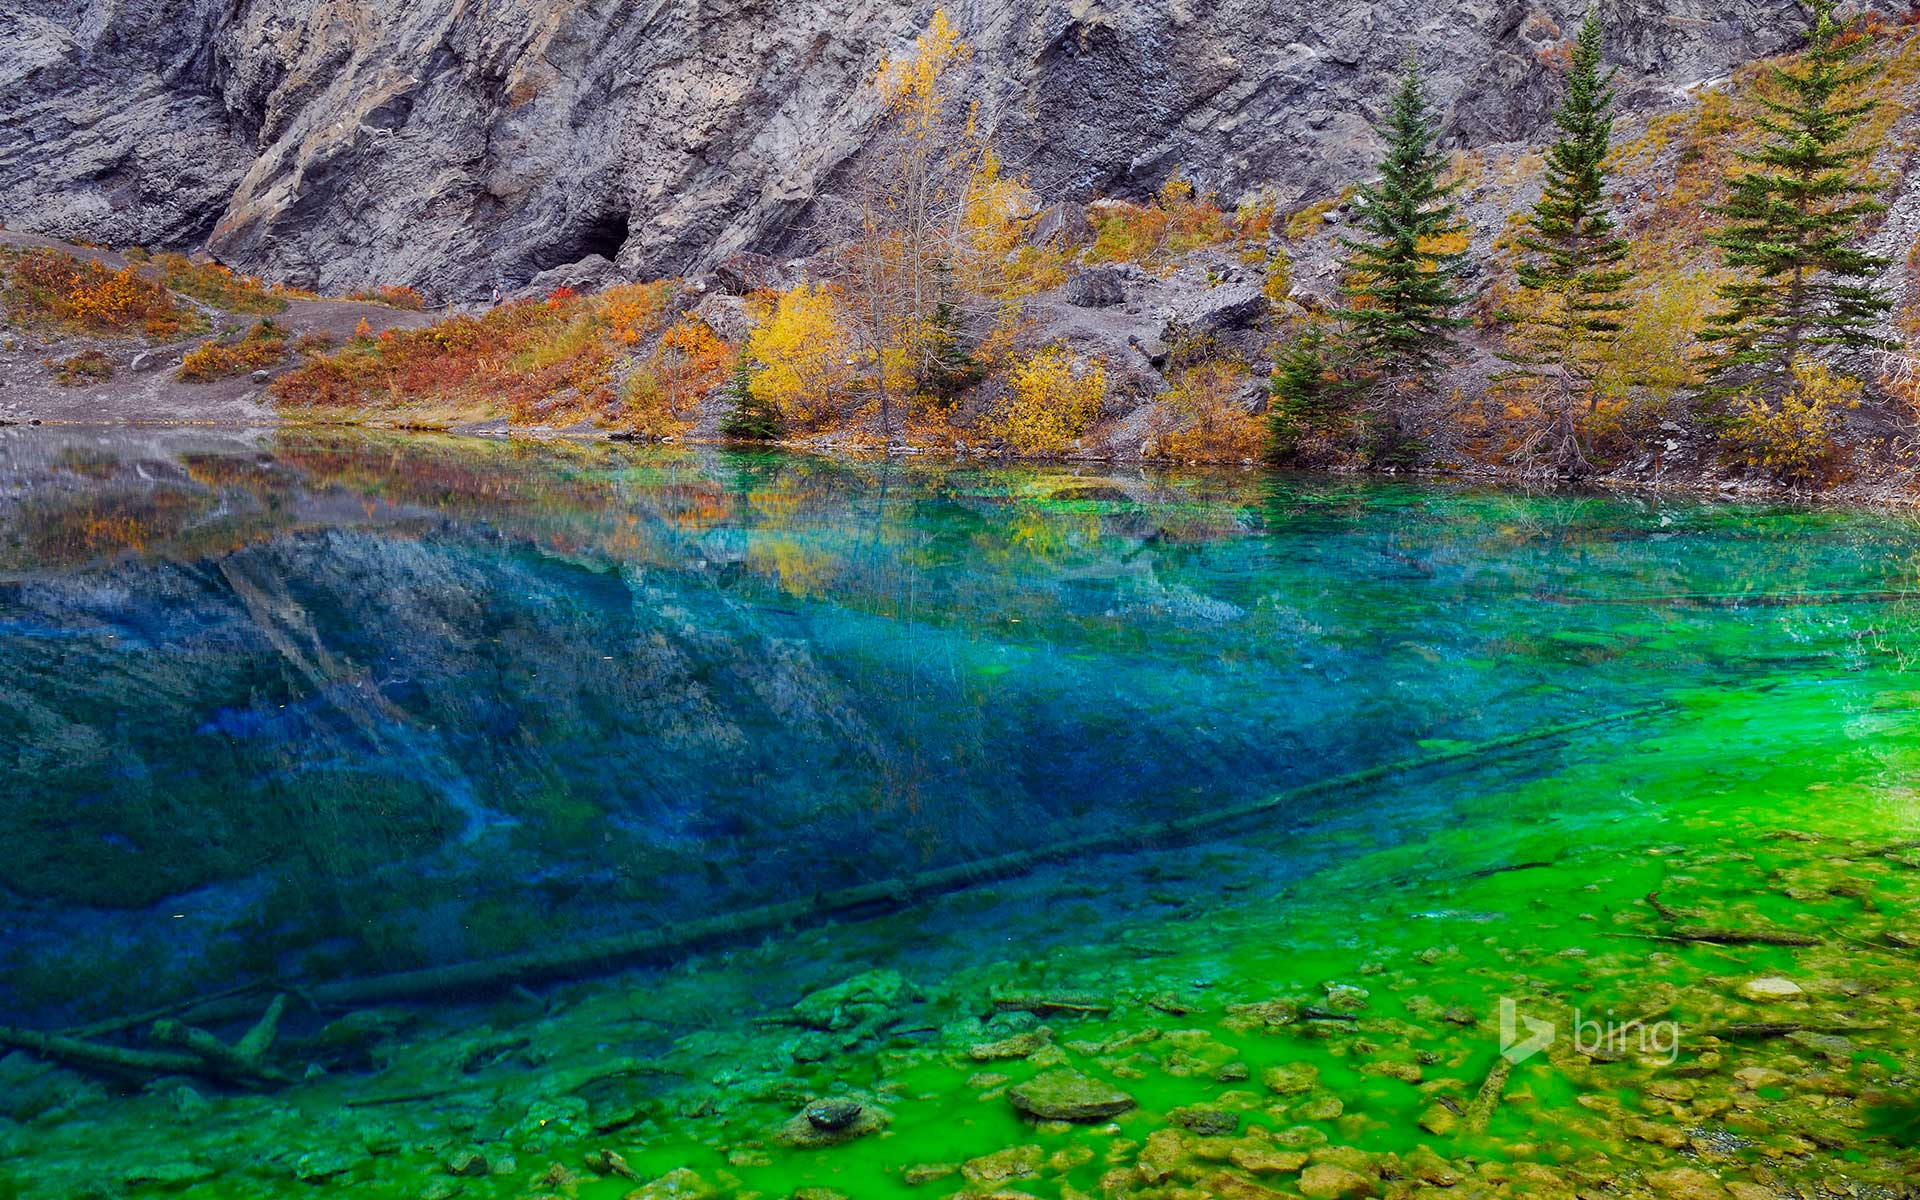 Blue and Green algae in the clear water of Grassi Lakes, near Canmore, Alberta, Canada